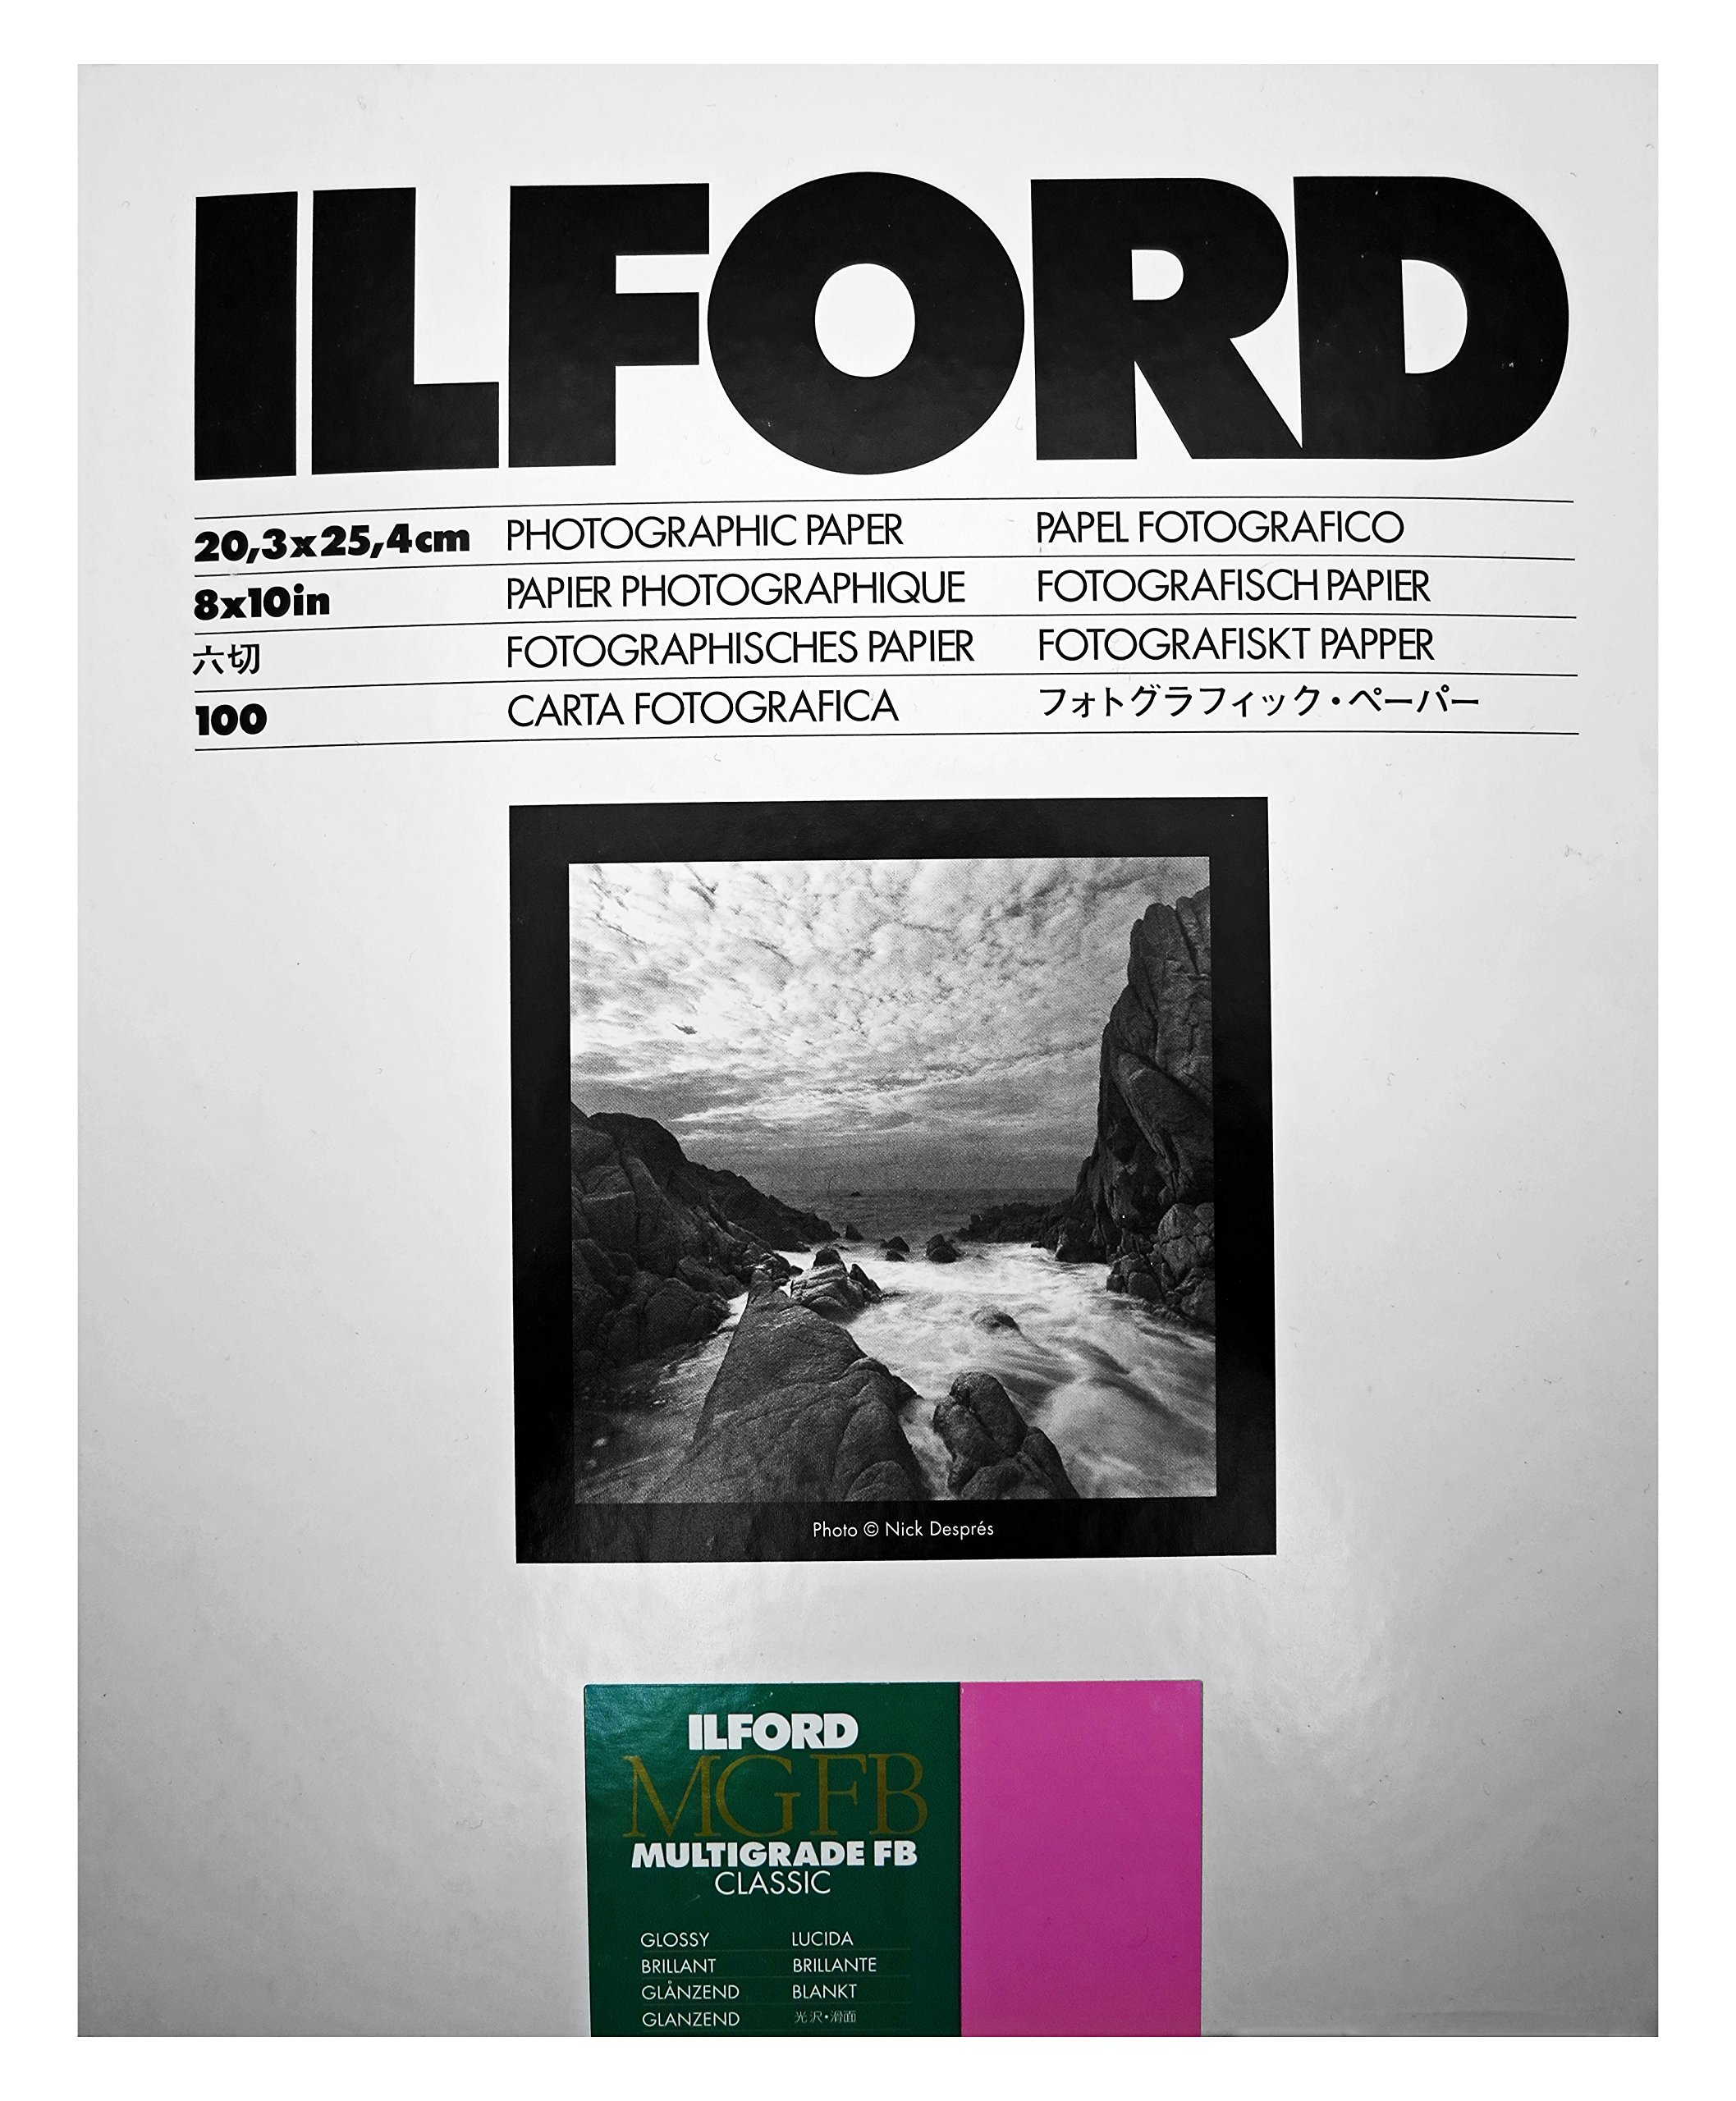 Ilford Multigrade IV FB Fiber Based VC Variable Contrast Double Weight Black and White,8x10, 100 Sheets Glossy, Enlarging Paper (1833489) by Ilford